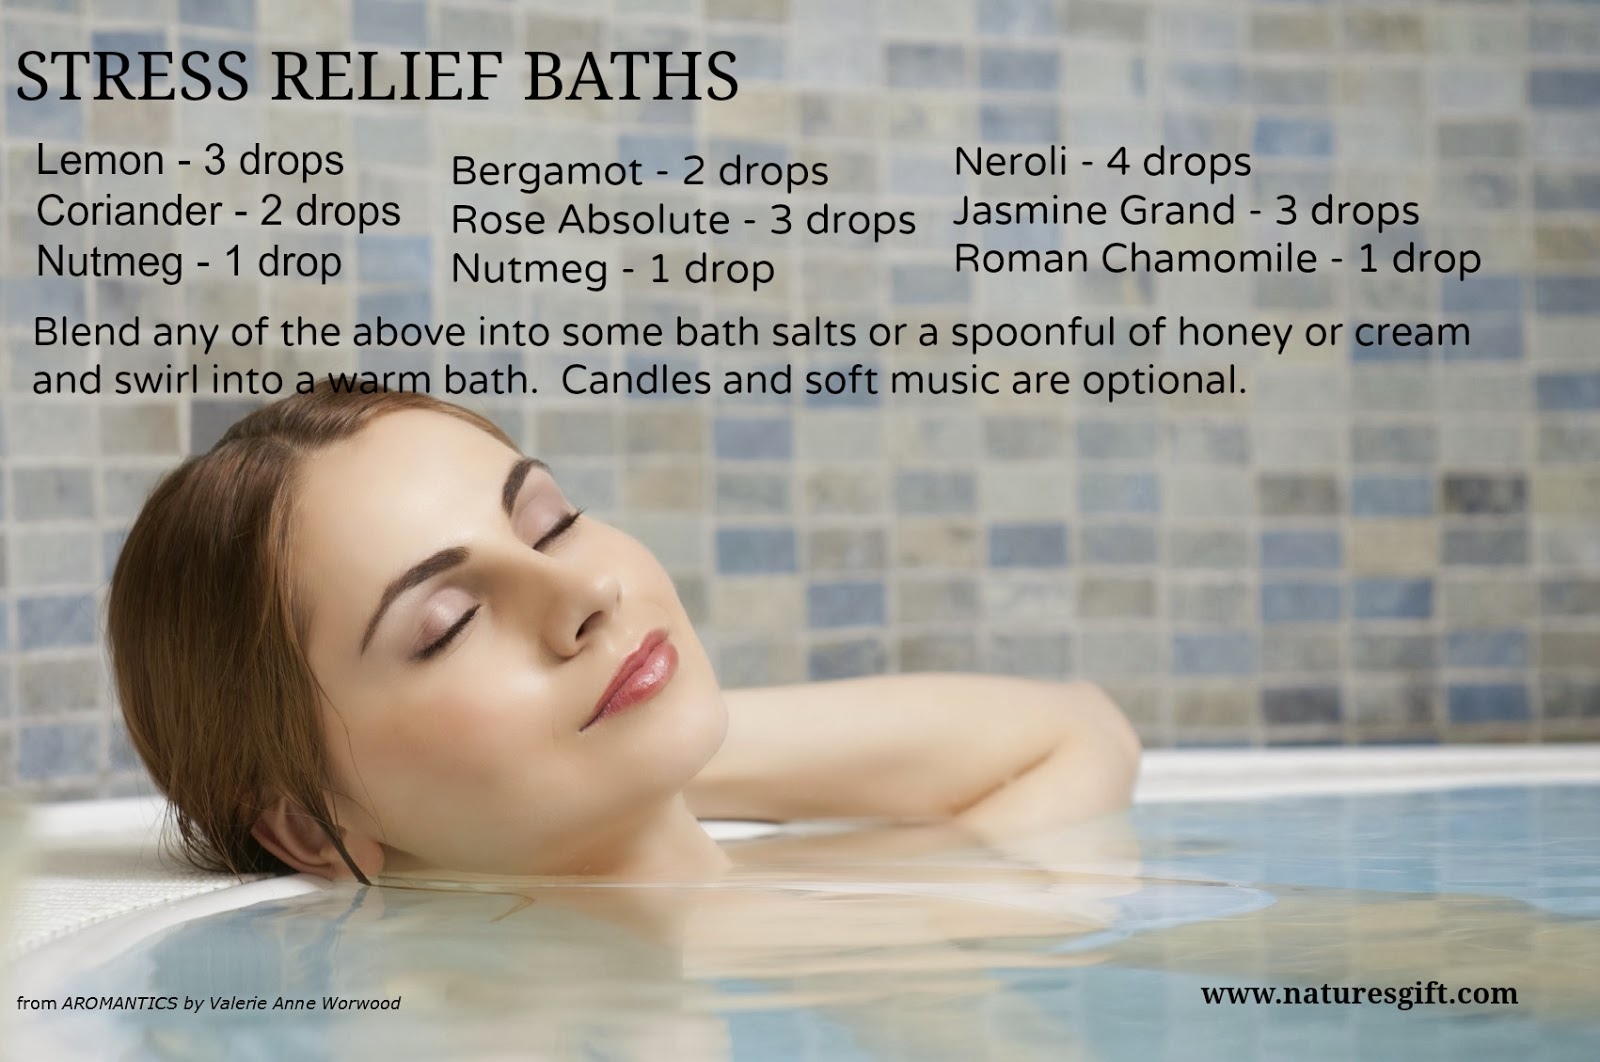 http://www.naturesgift.com/aromatherapytable.htm